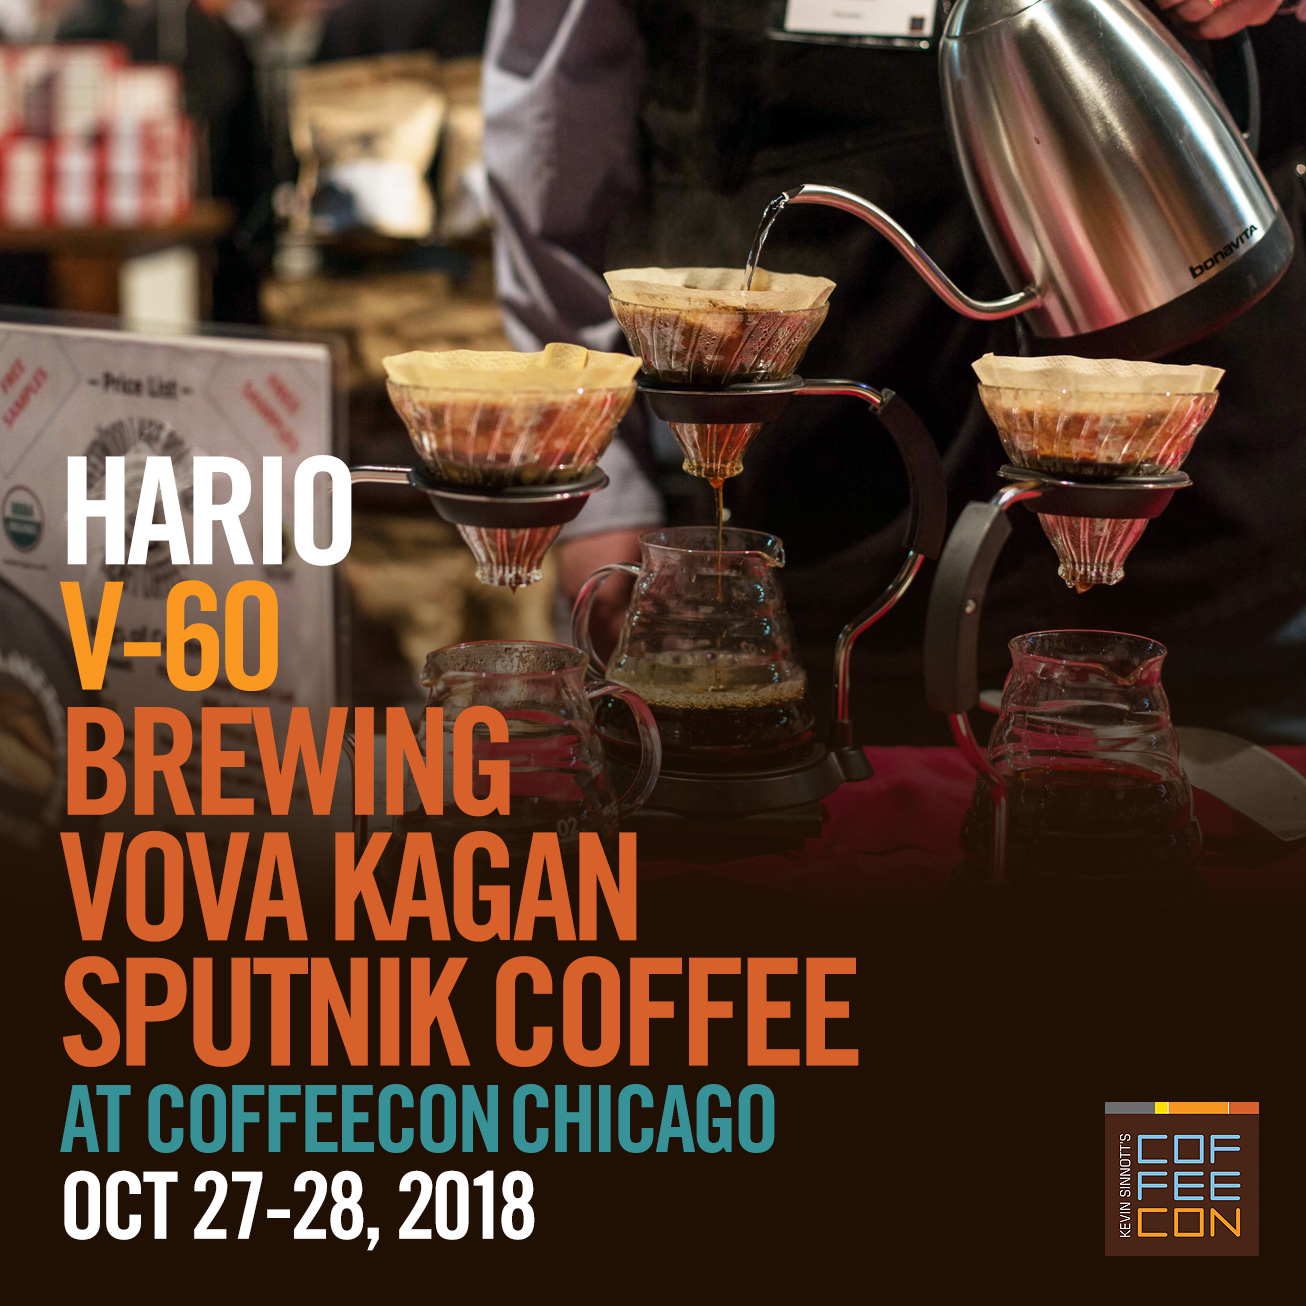 Hario V-60 with Sputnick Coffee Coffee at CoffeeConChicago 2018